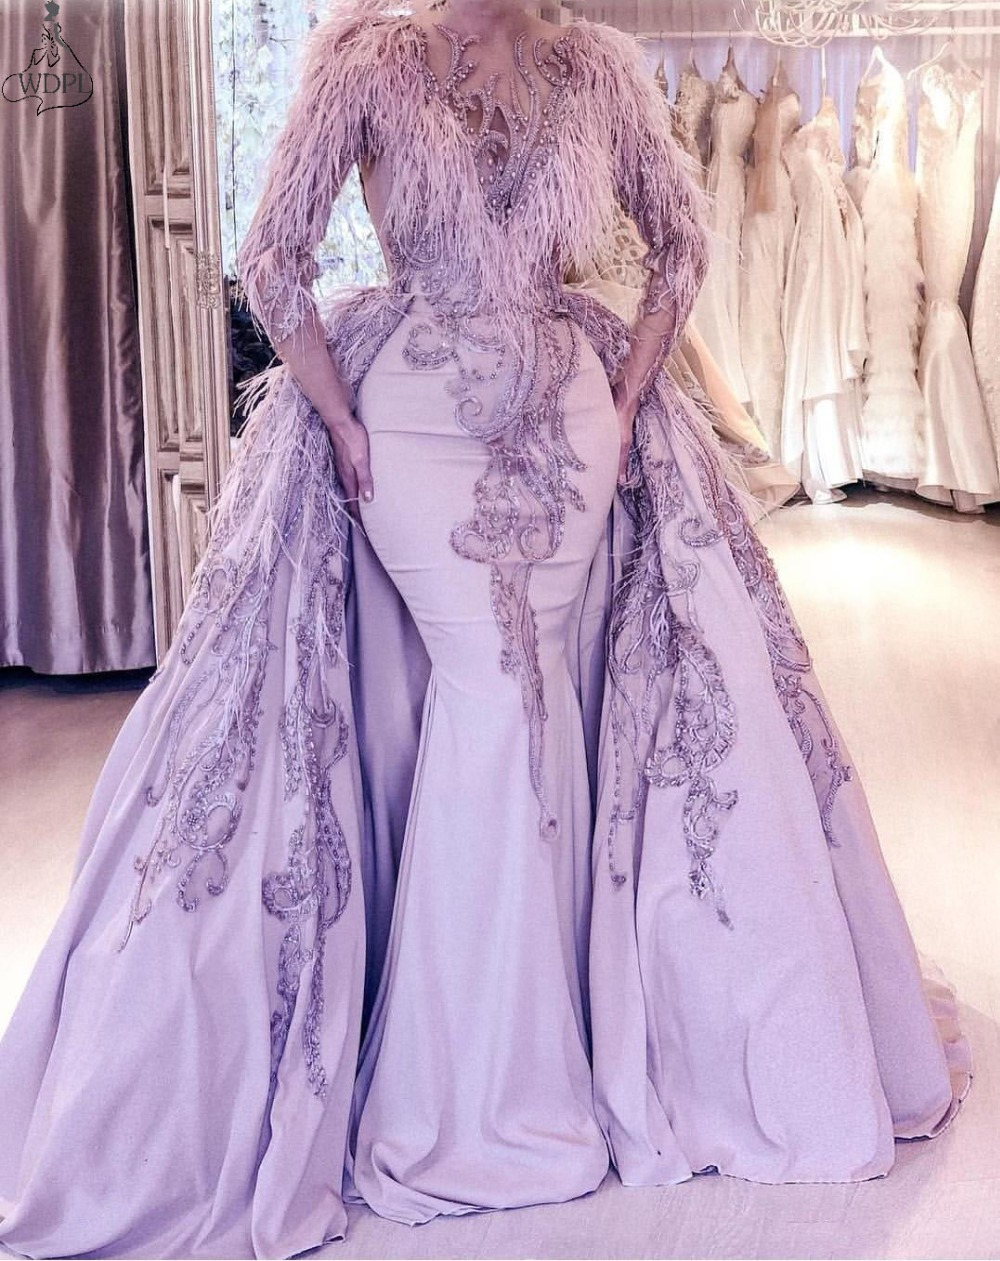 Lavender Mermaid Prom Dress With Detachable Train 2020 Feather Evening Gowns Long Sleeve Overskirts Beads Embroidery Formal Plus Size GownLavender Mermaid Prom Dress With Detachable Train 2020 Feather Evening Gowns Long